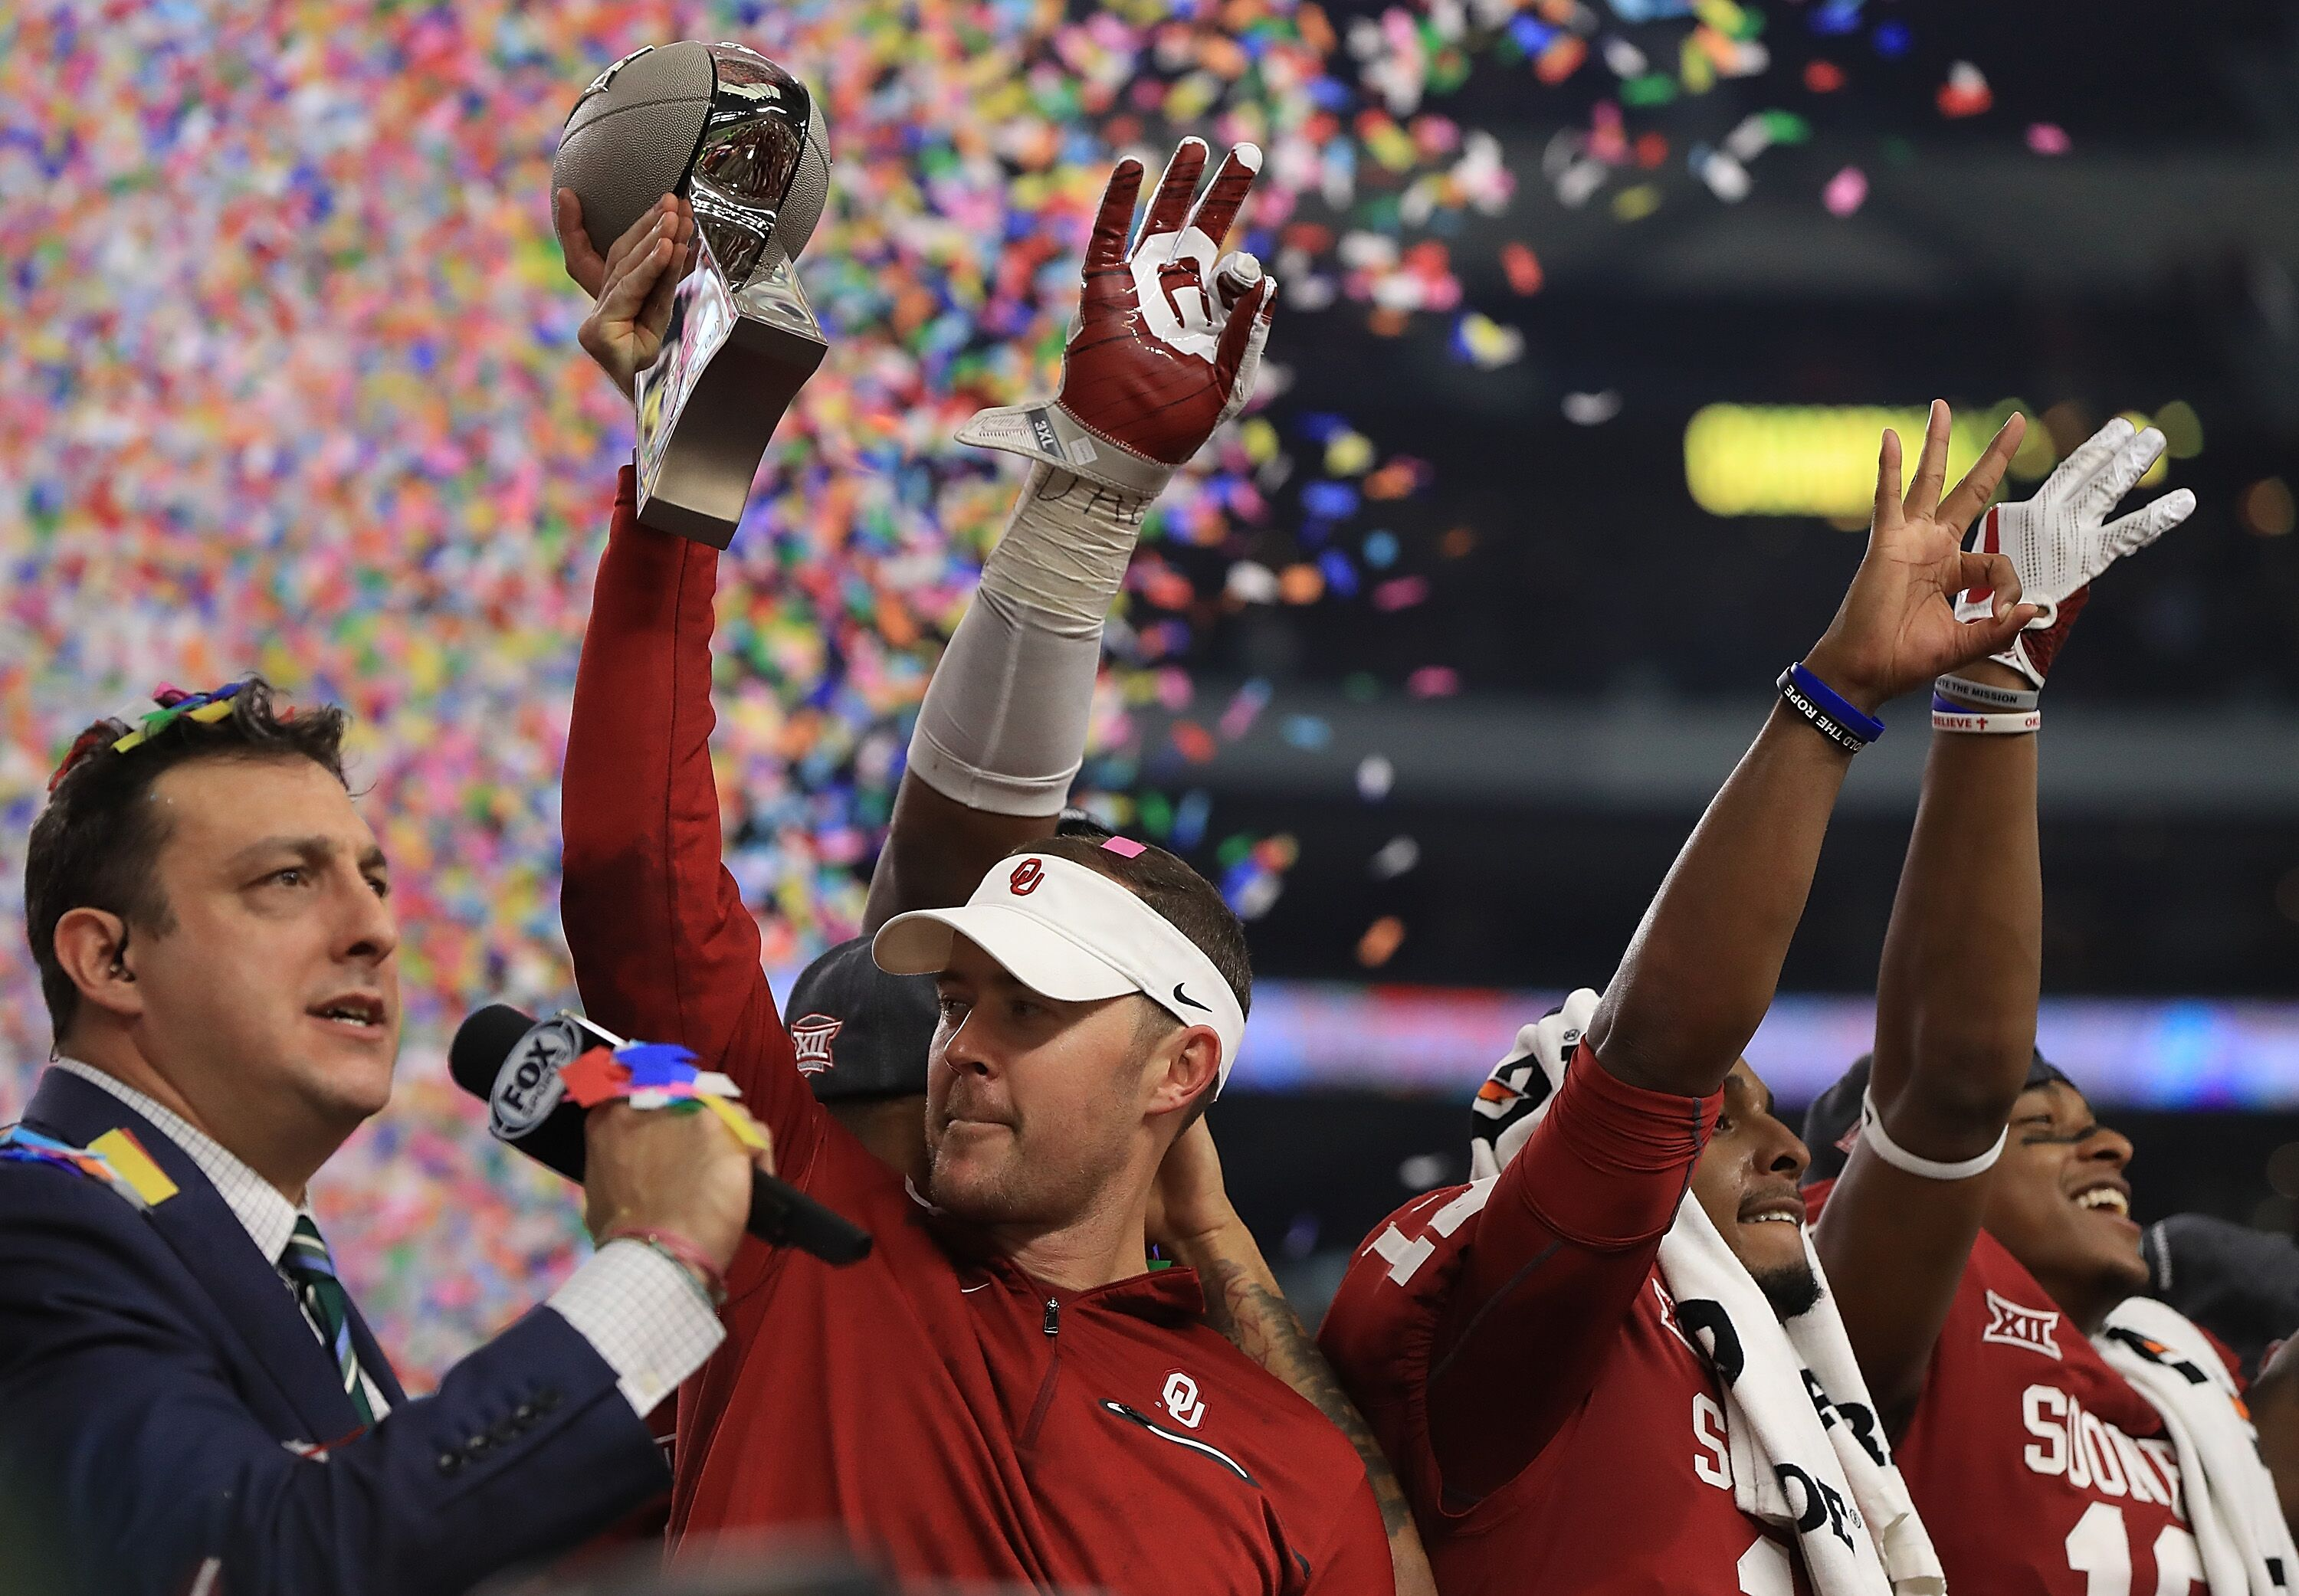 Oklahoma football: Riley doesn't see offense 'dipping' in 2019